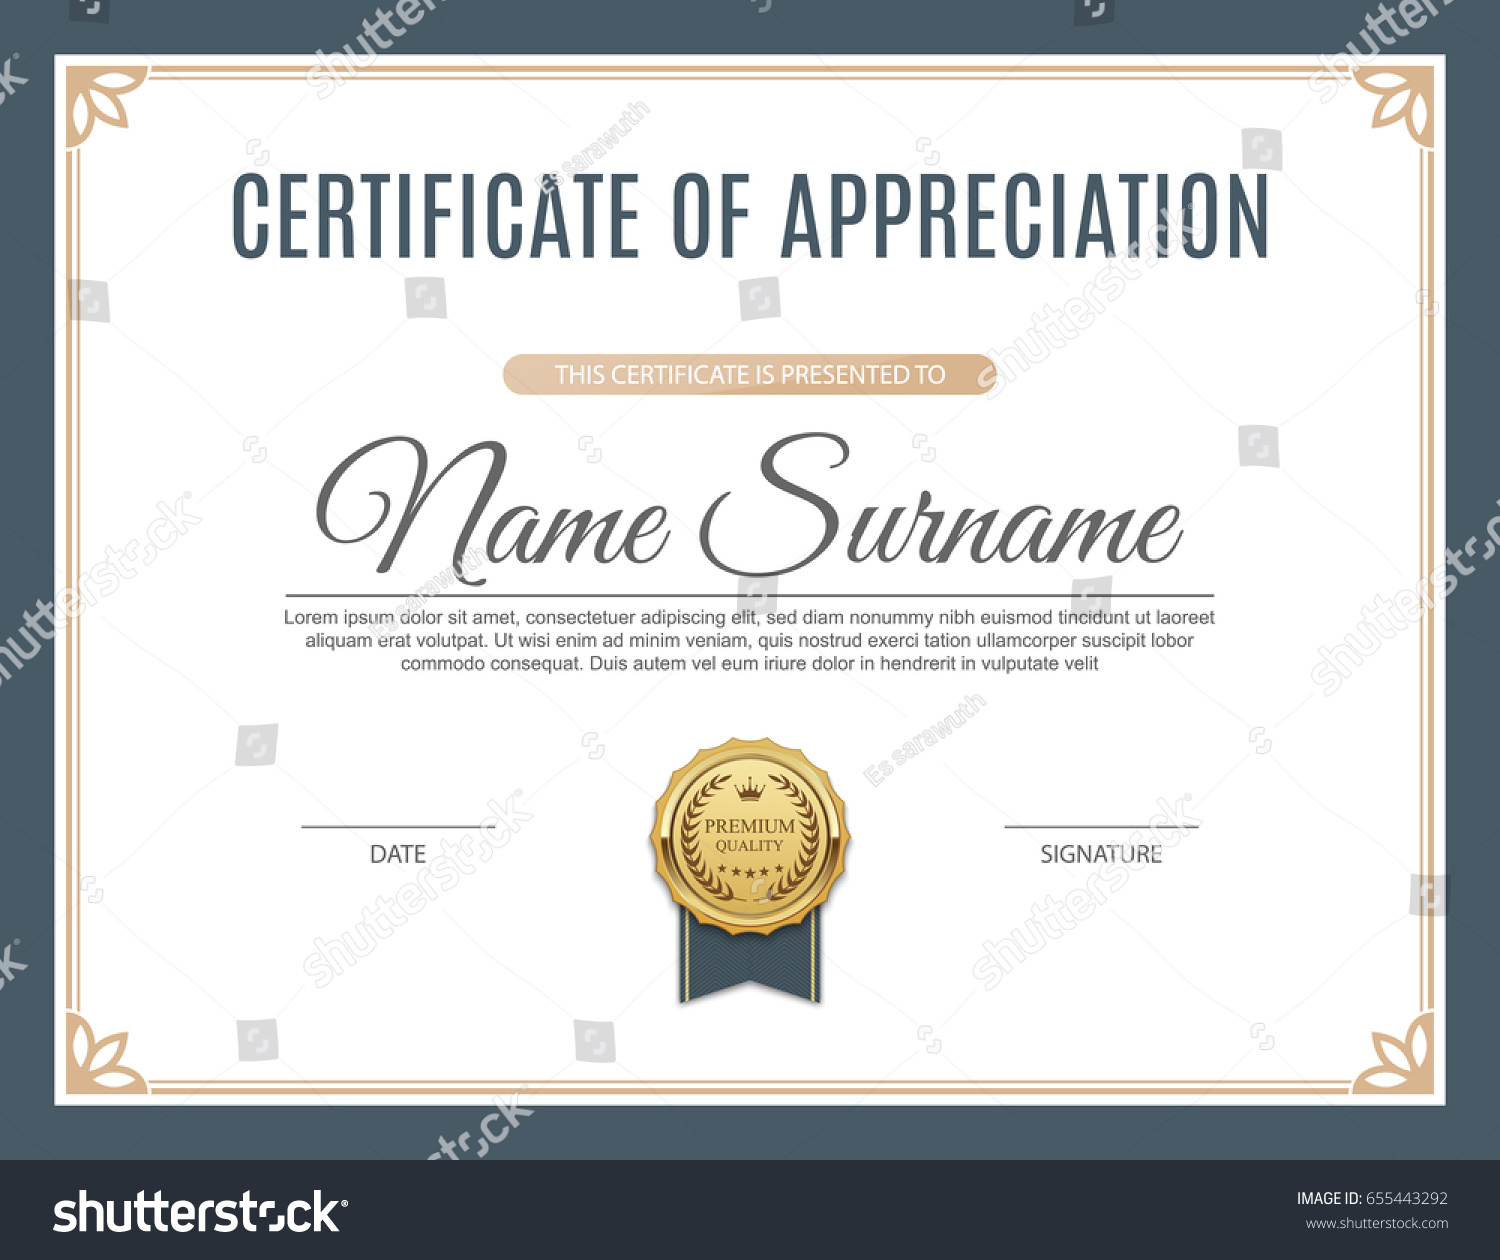 Certificate appreciation template design vector illustration stock certificate of appreciation template design vector illustration alramifo Image collections